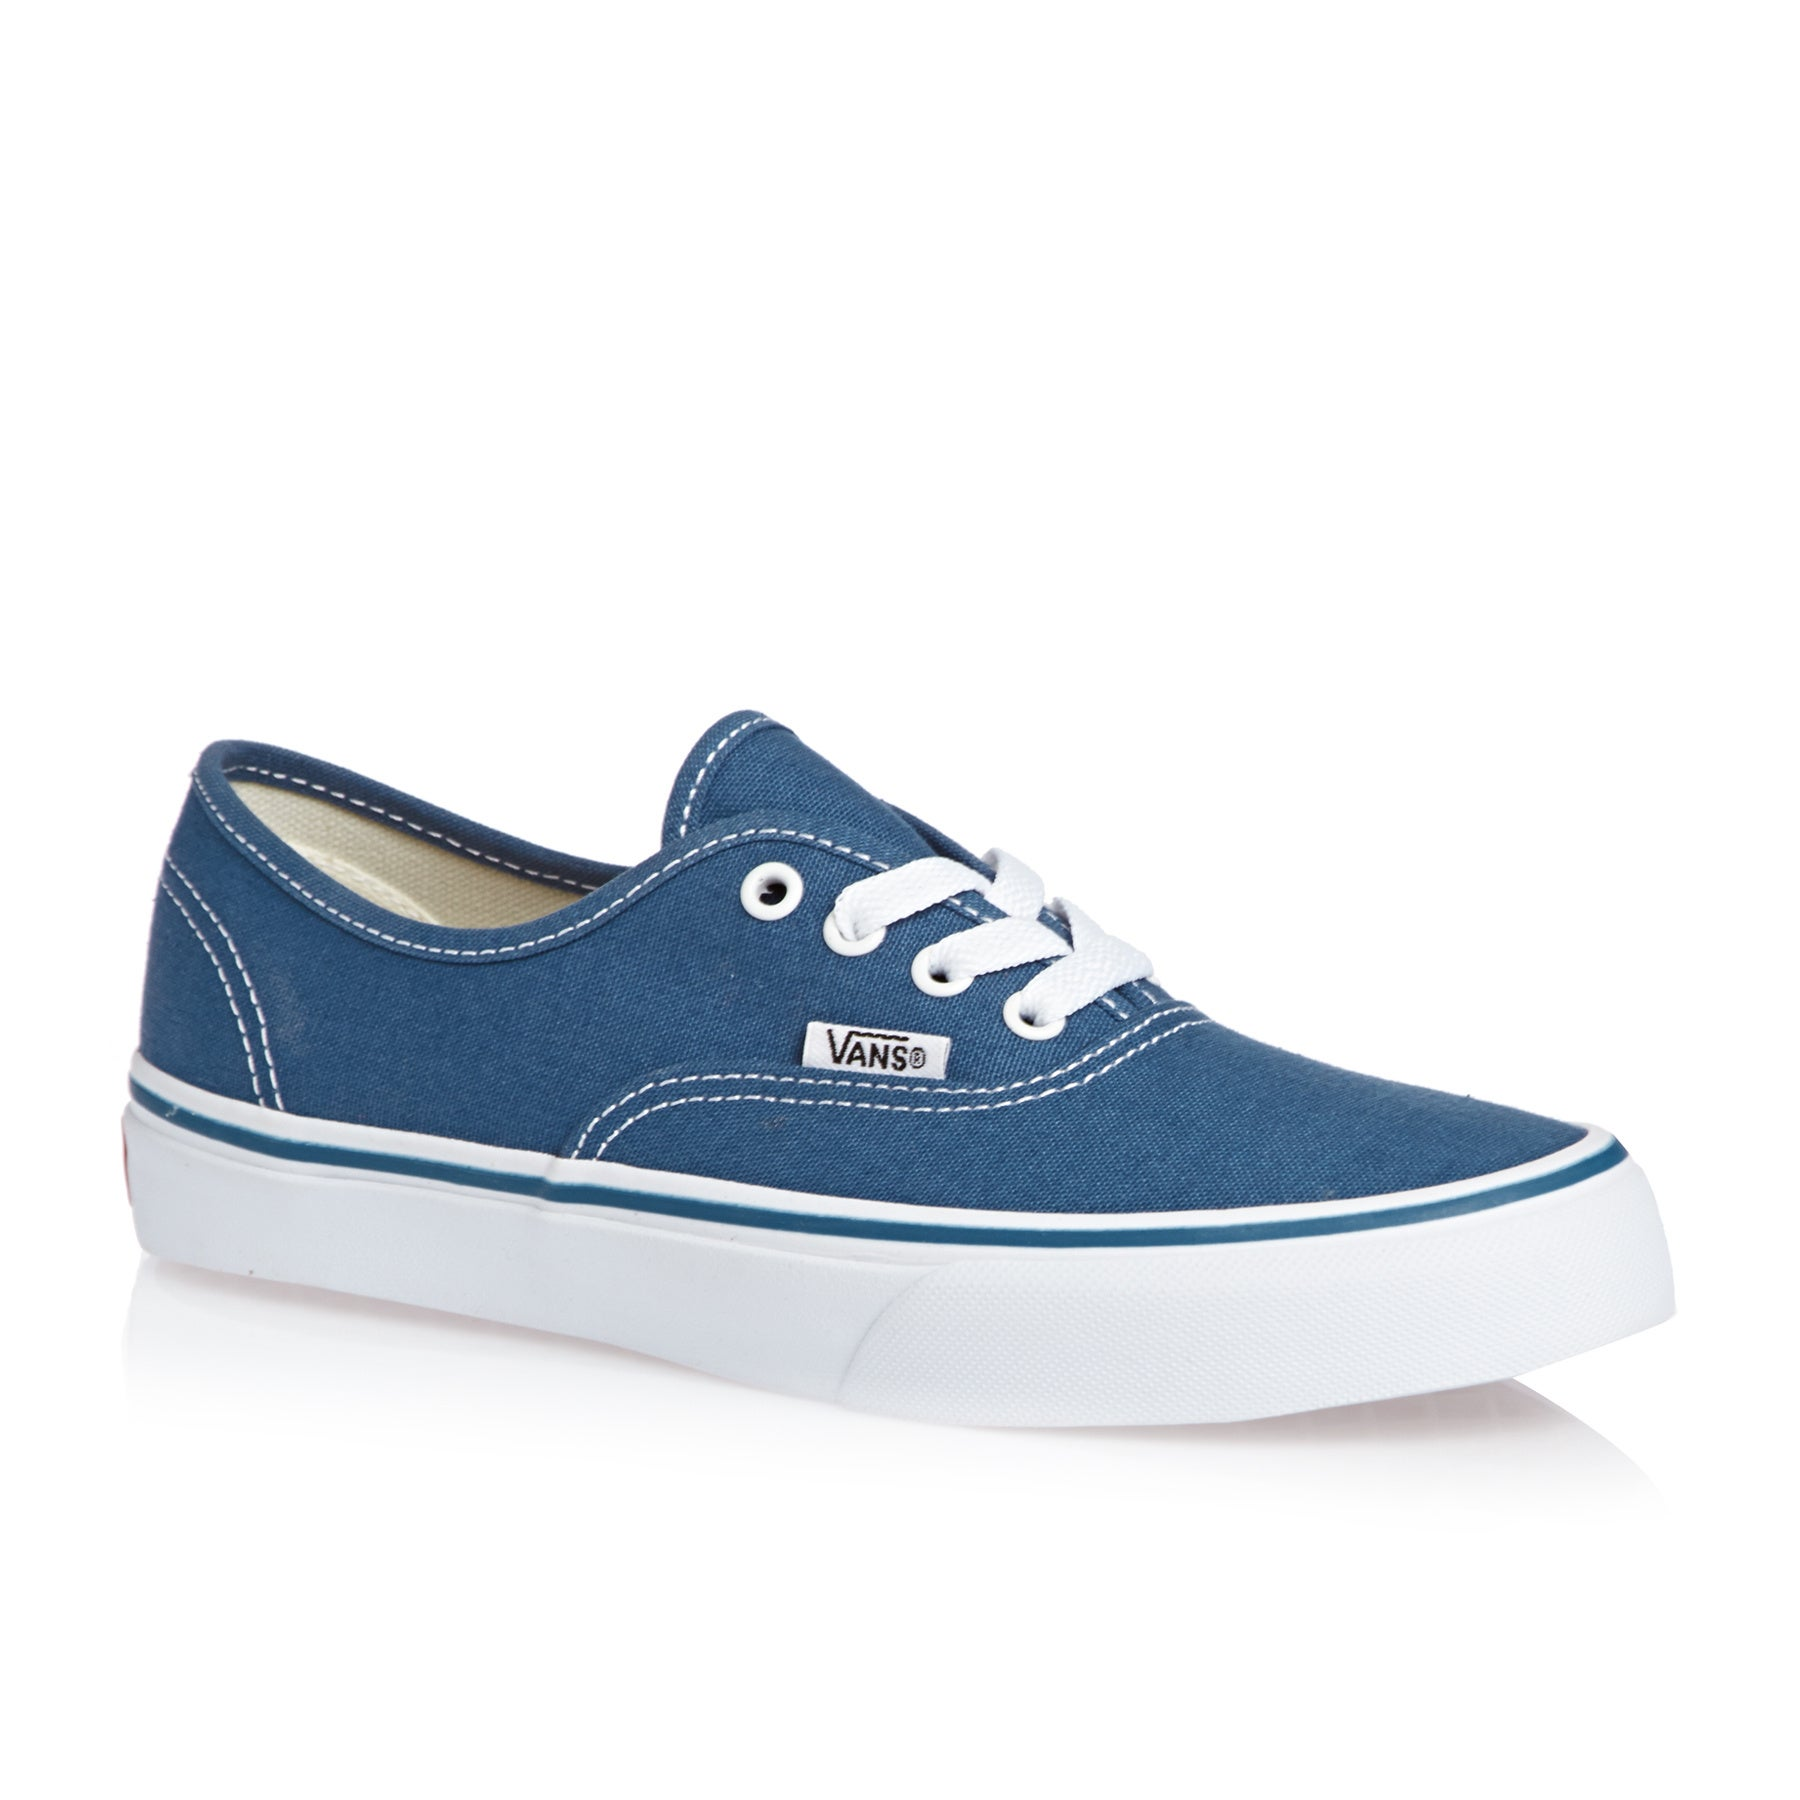 Vans Authentic Kids Shoes - Navy True White